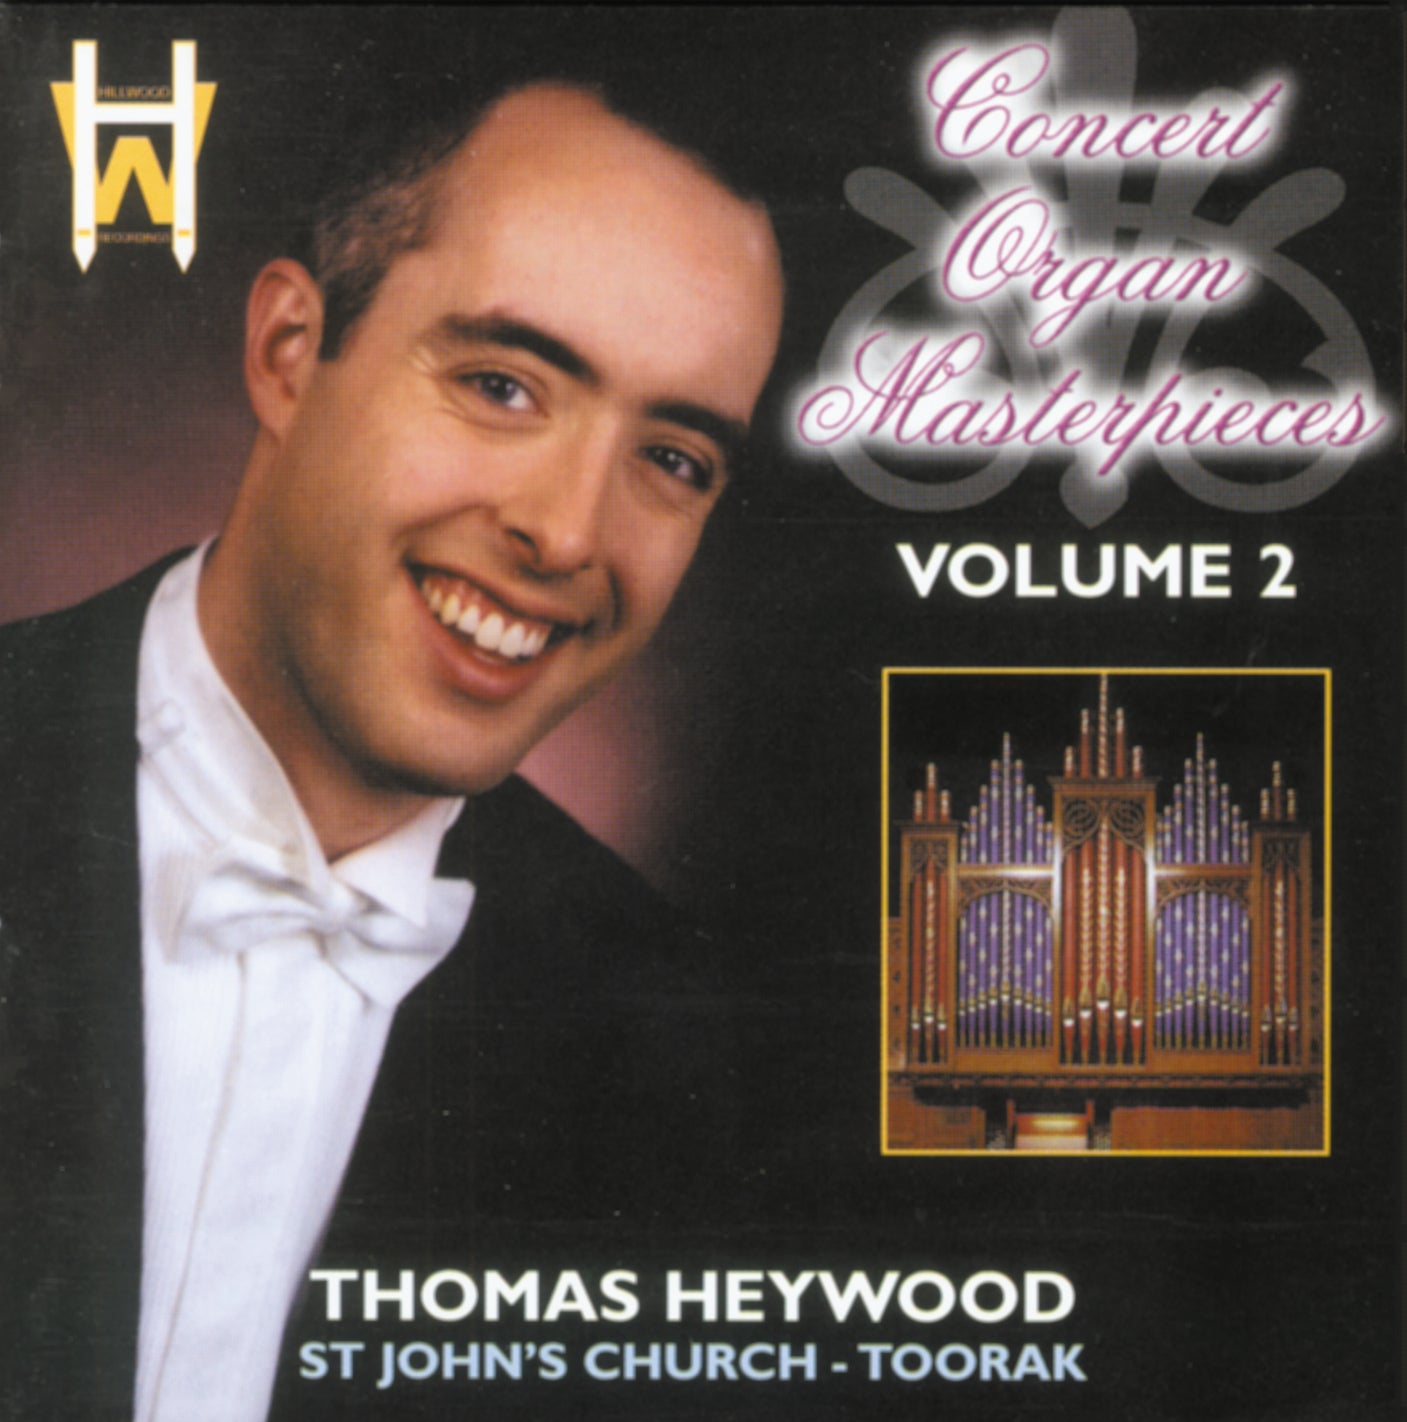 Concert Organ Masterpieces - Volume 2 (MP3 Album) | Thomas Heywood | Concert Organ International